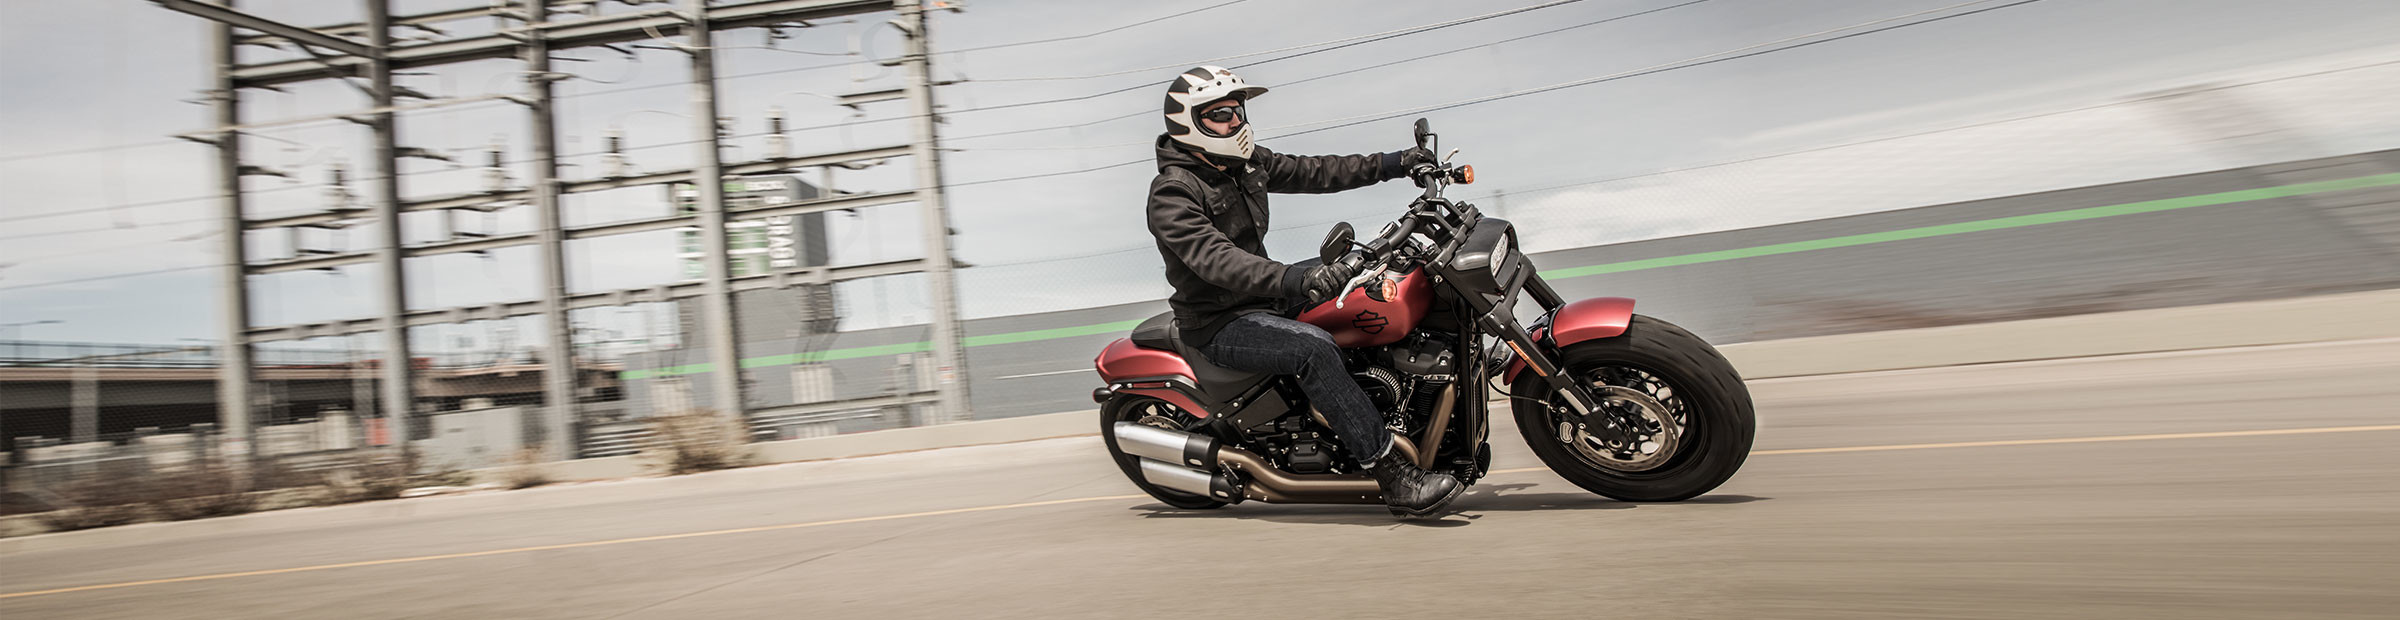 Book A Free Test Ride at Diamondback Harley-Davidson®